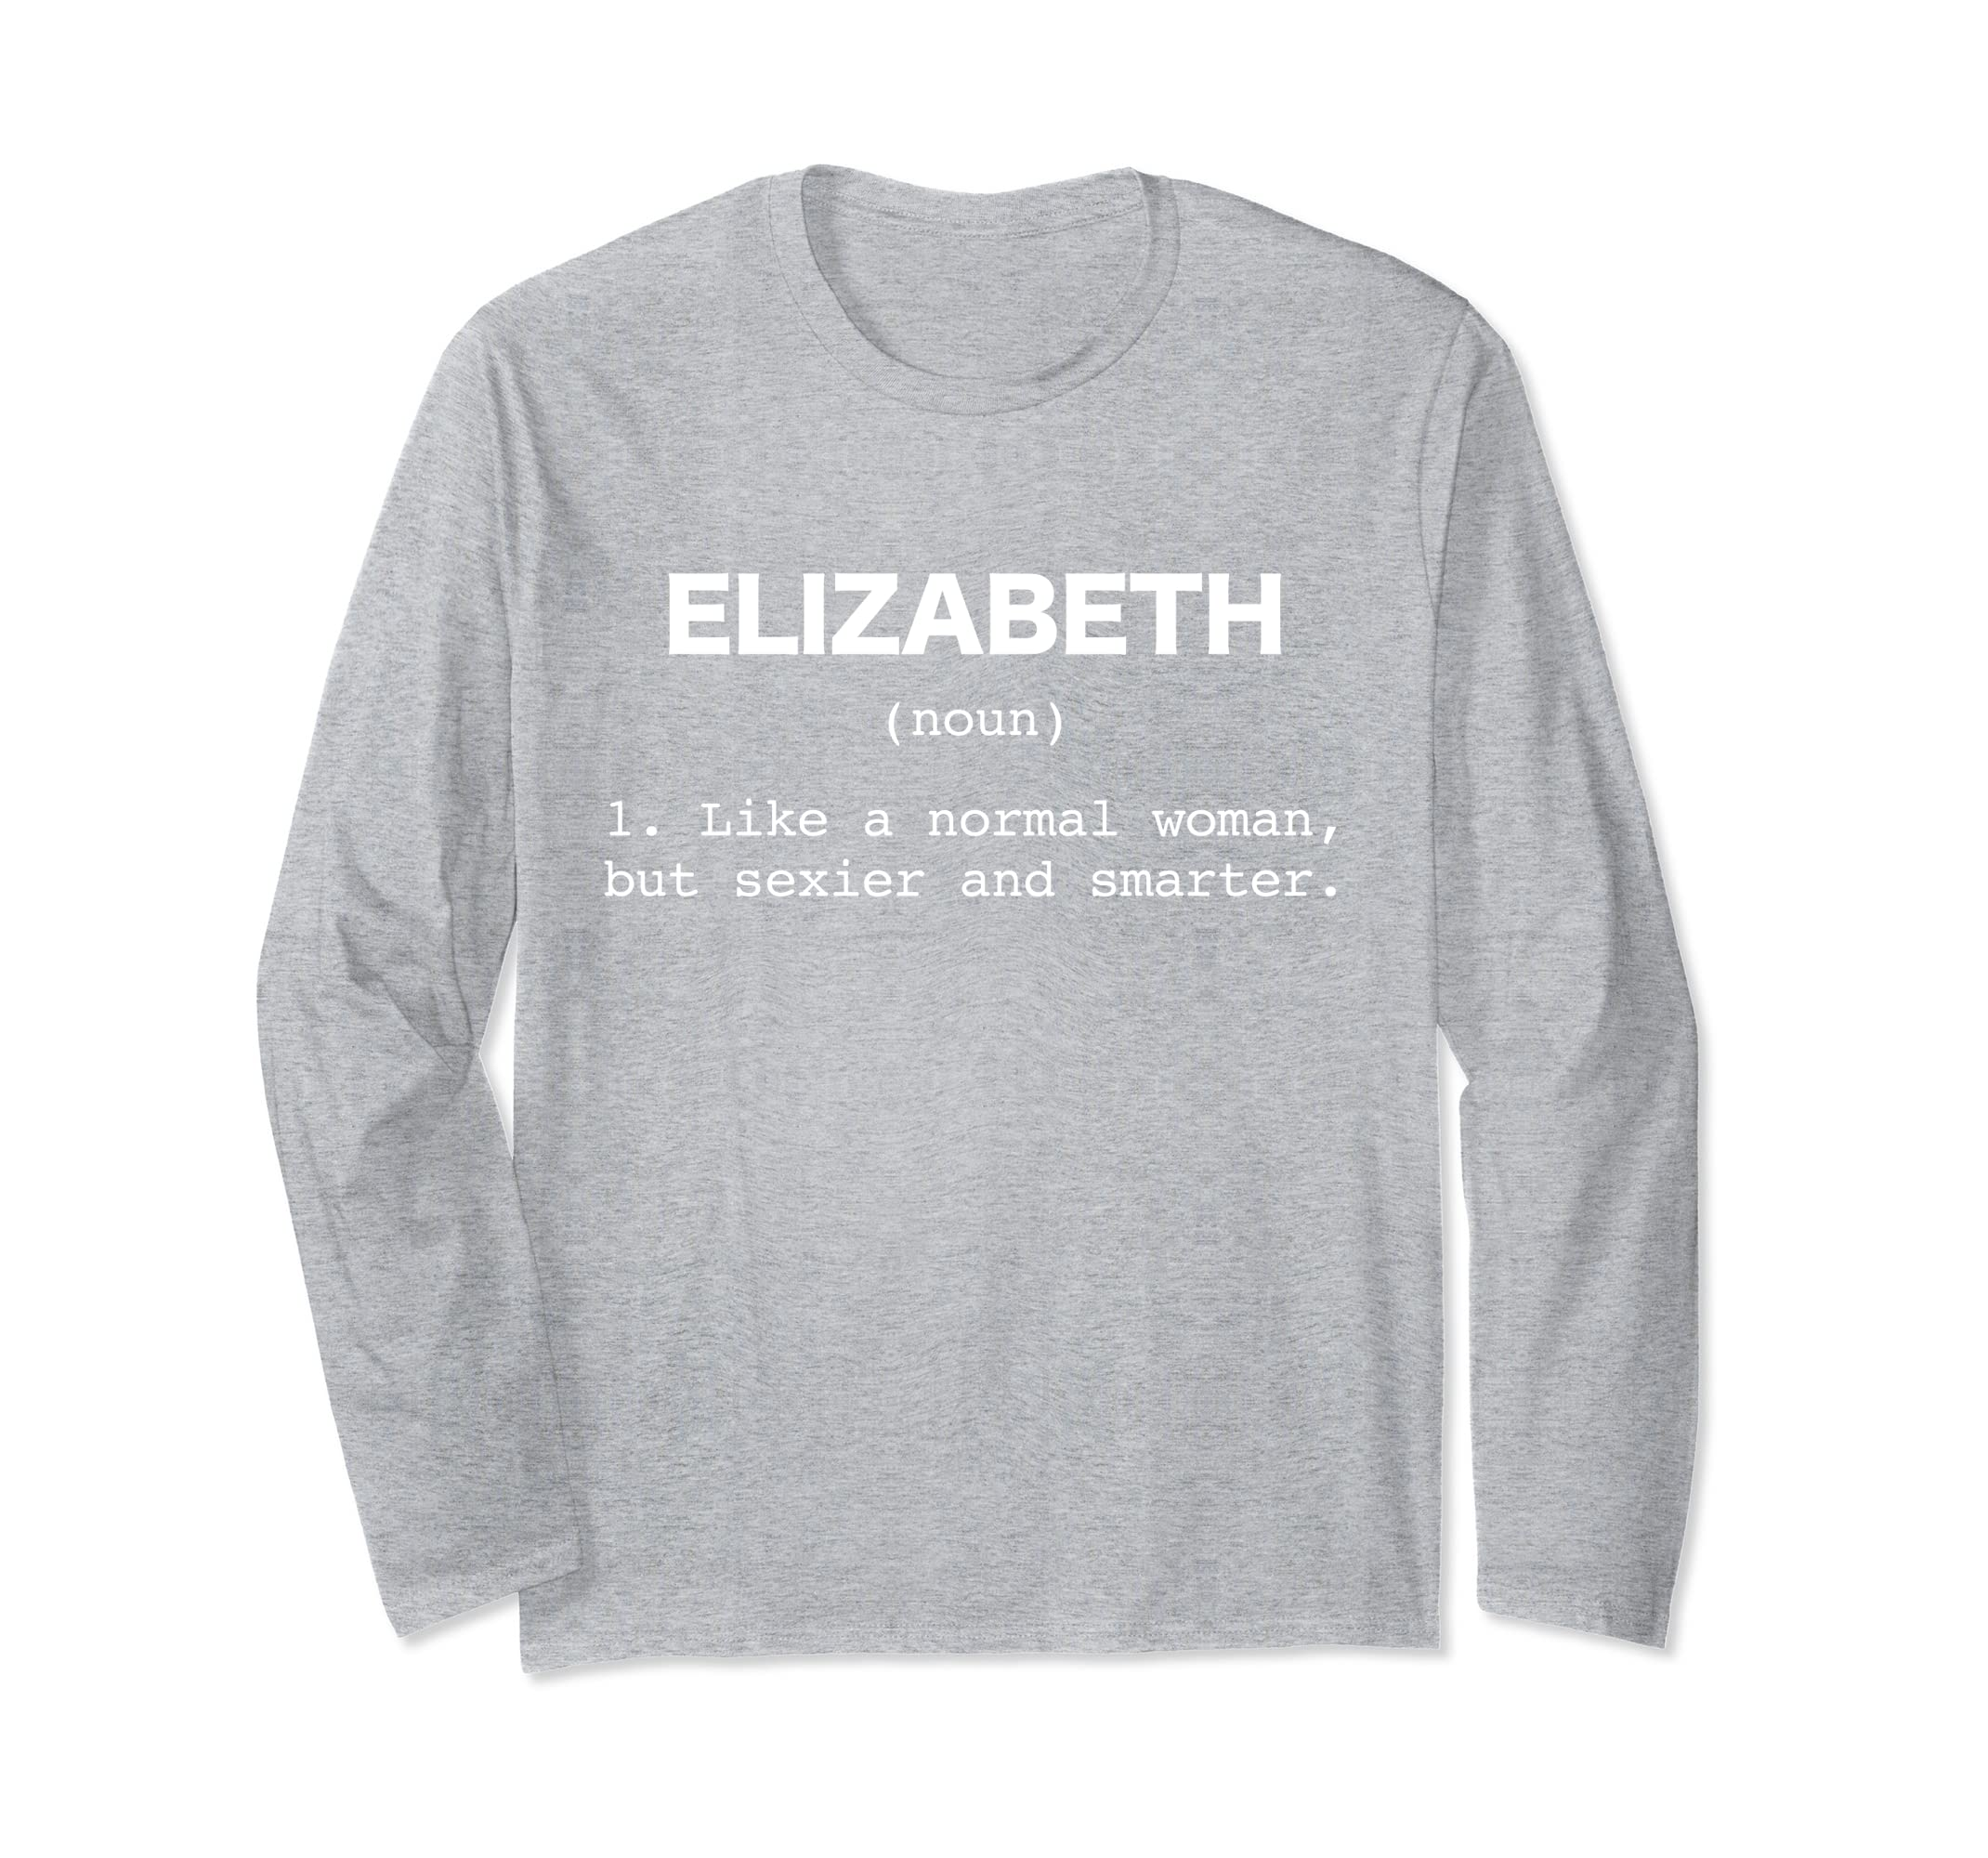 Funny Name Shirts Elizabeth Shirt For Women Liz Best Gift For Your